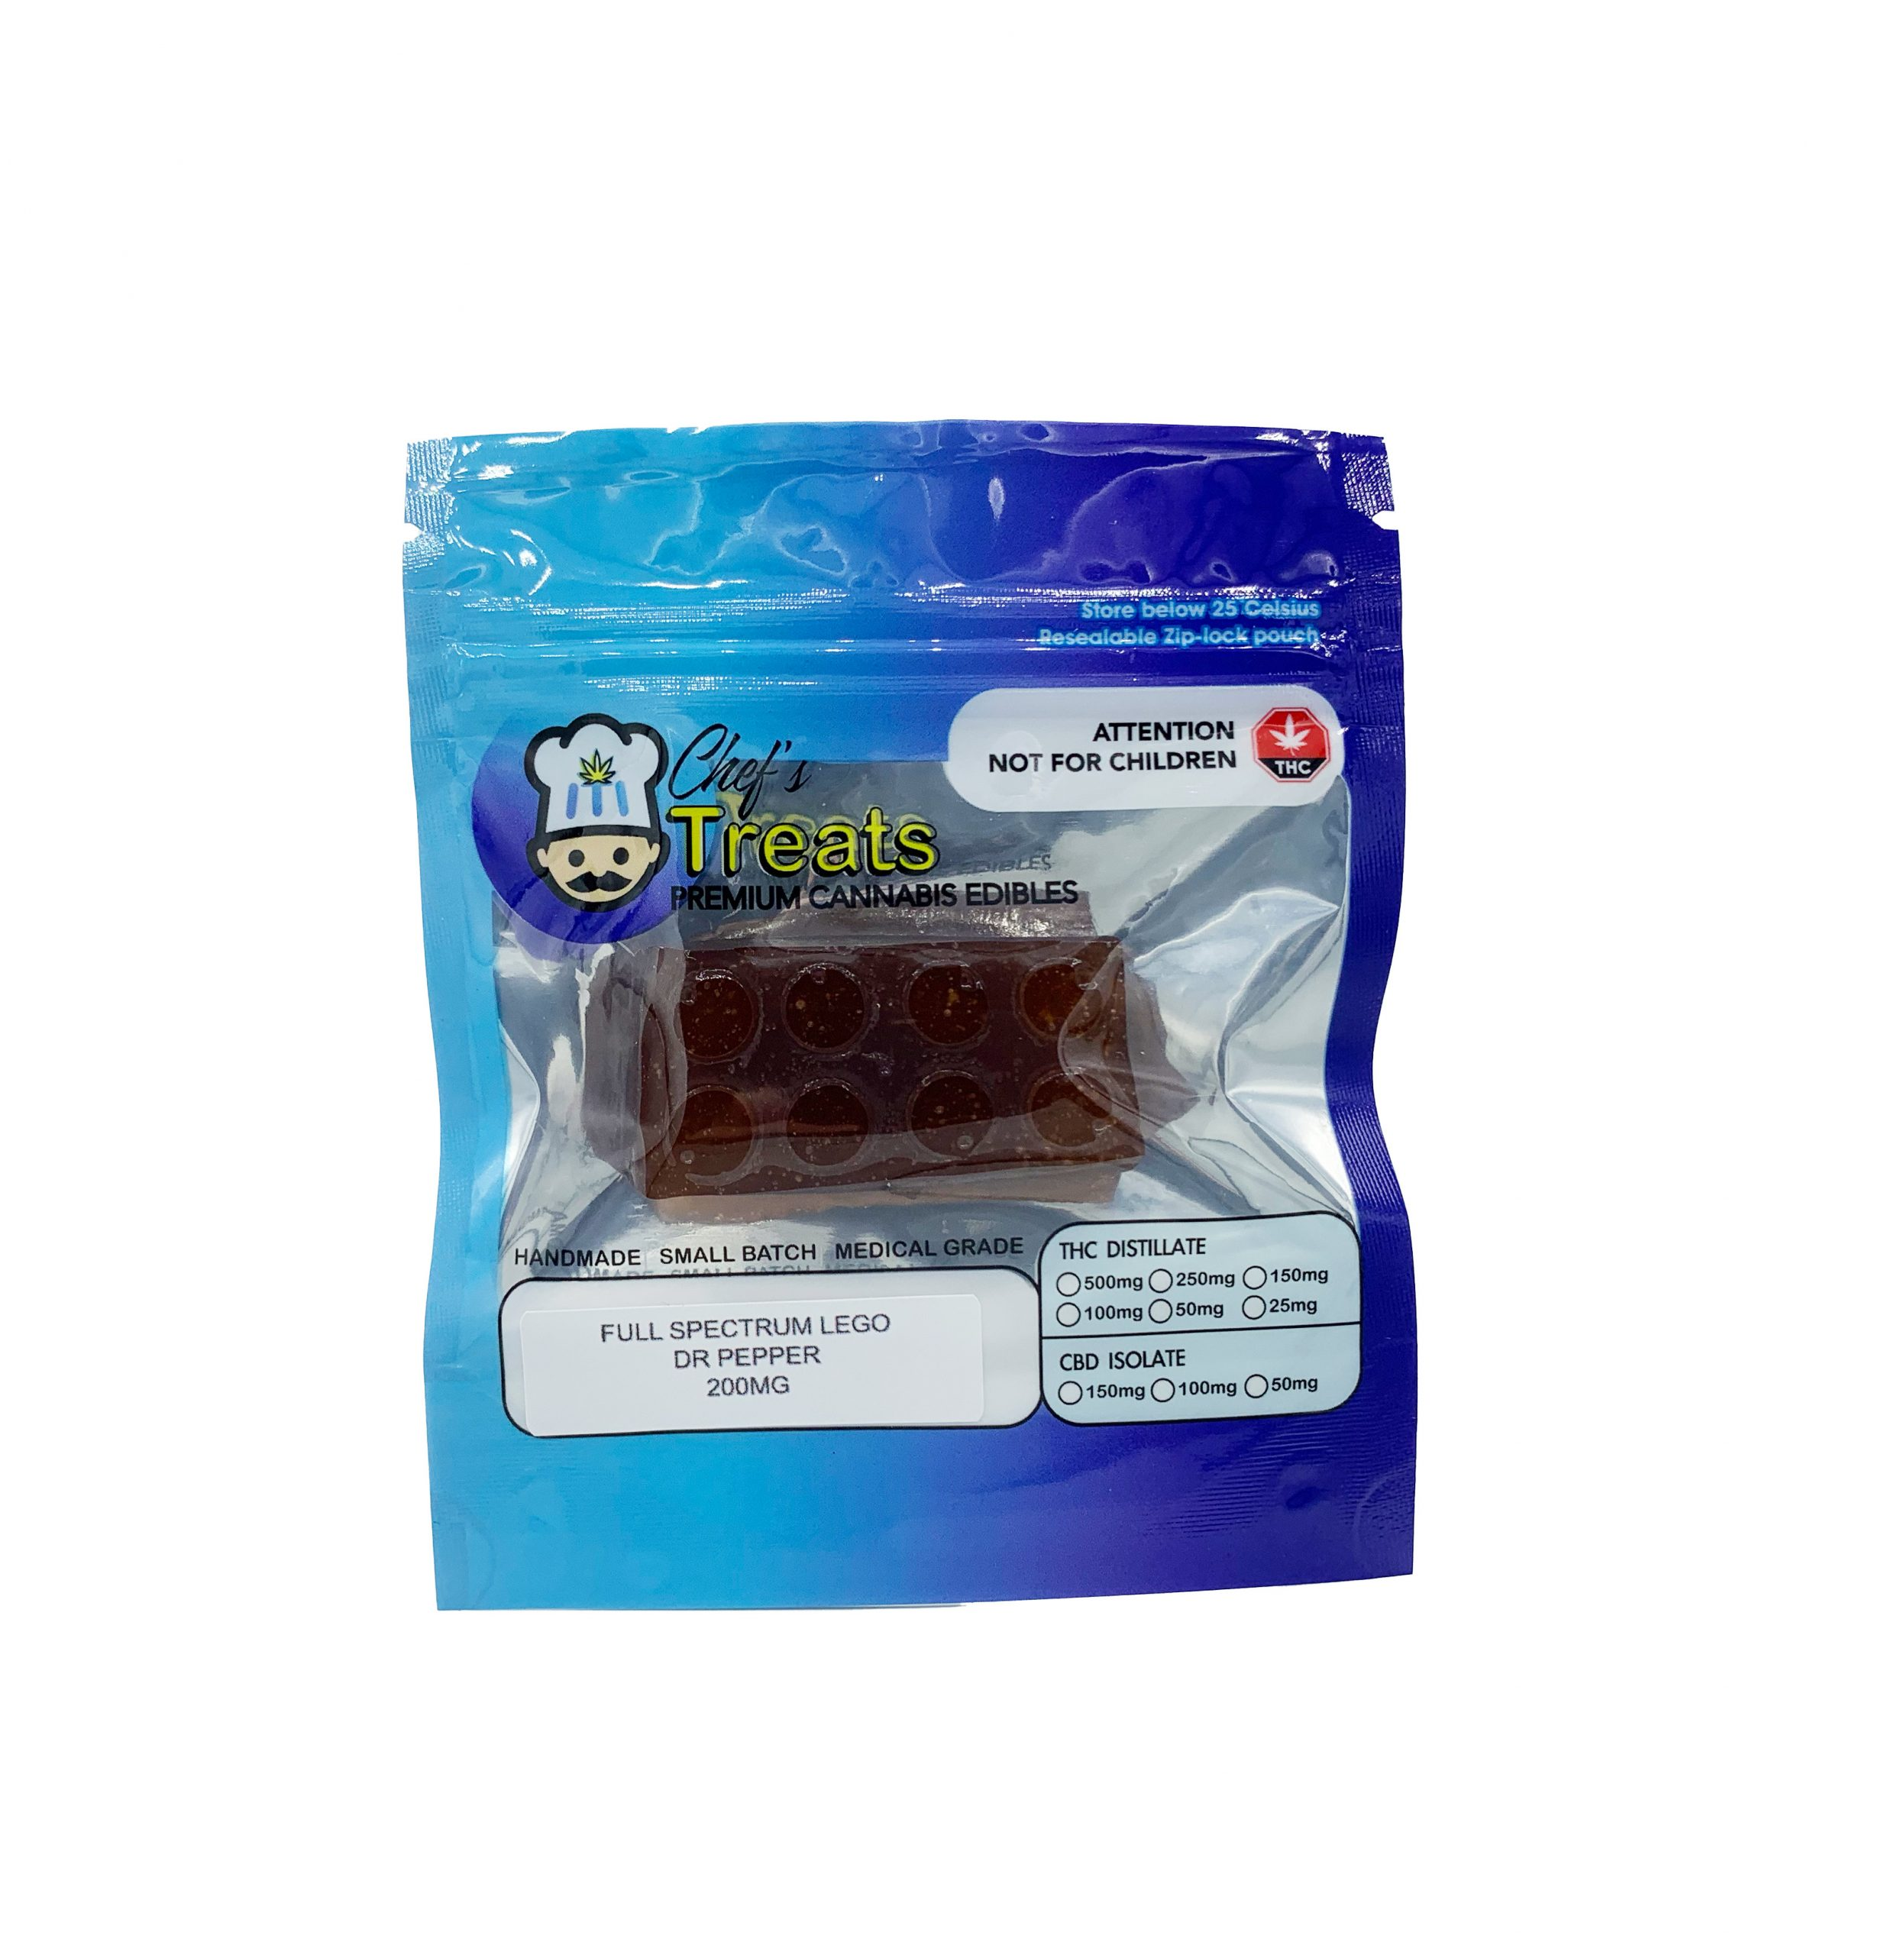 Buy Chef's Treats - Full Spectrum Lego Dr. Pepper 200mg THC Online - WTF Online Dispensary - Cannabis!